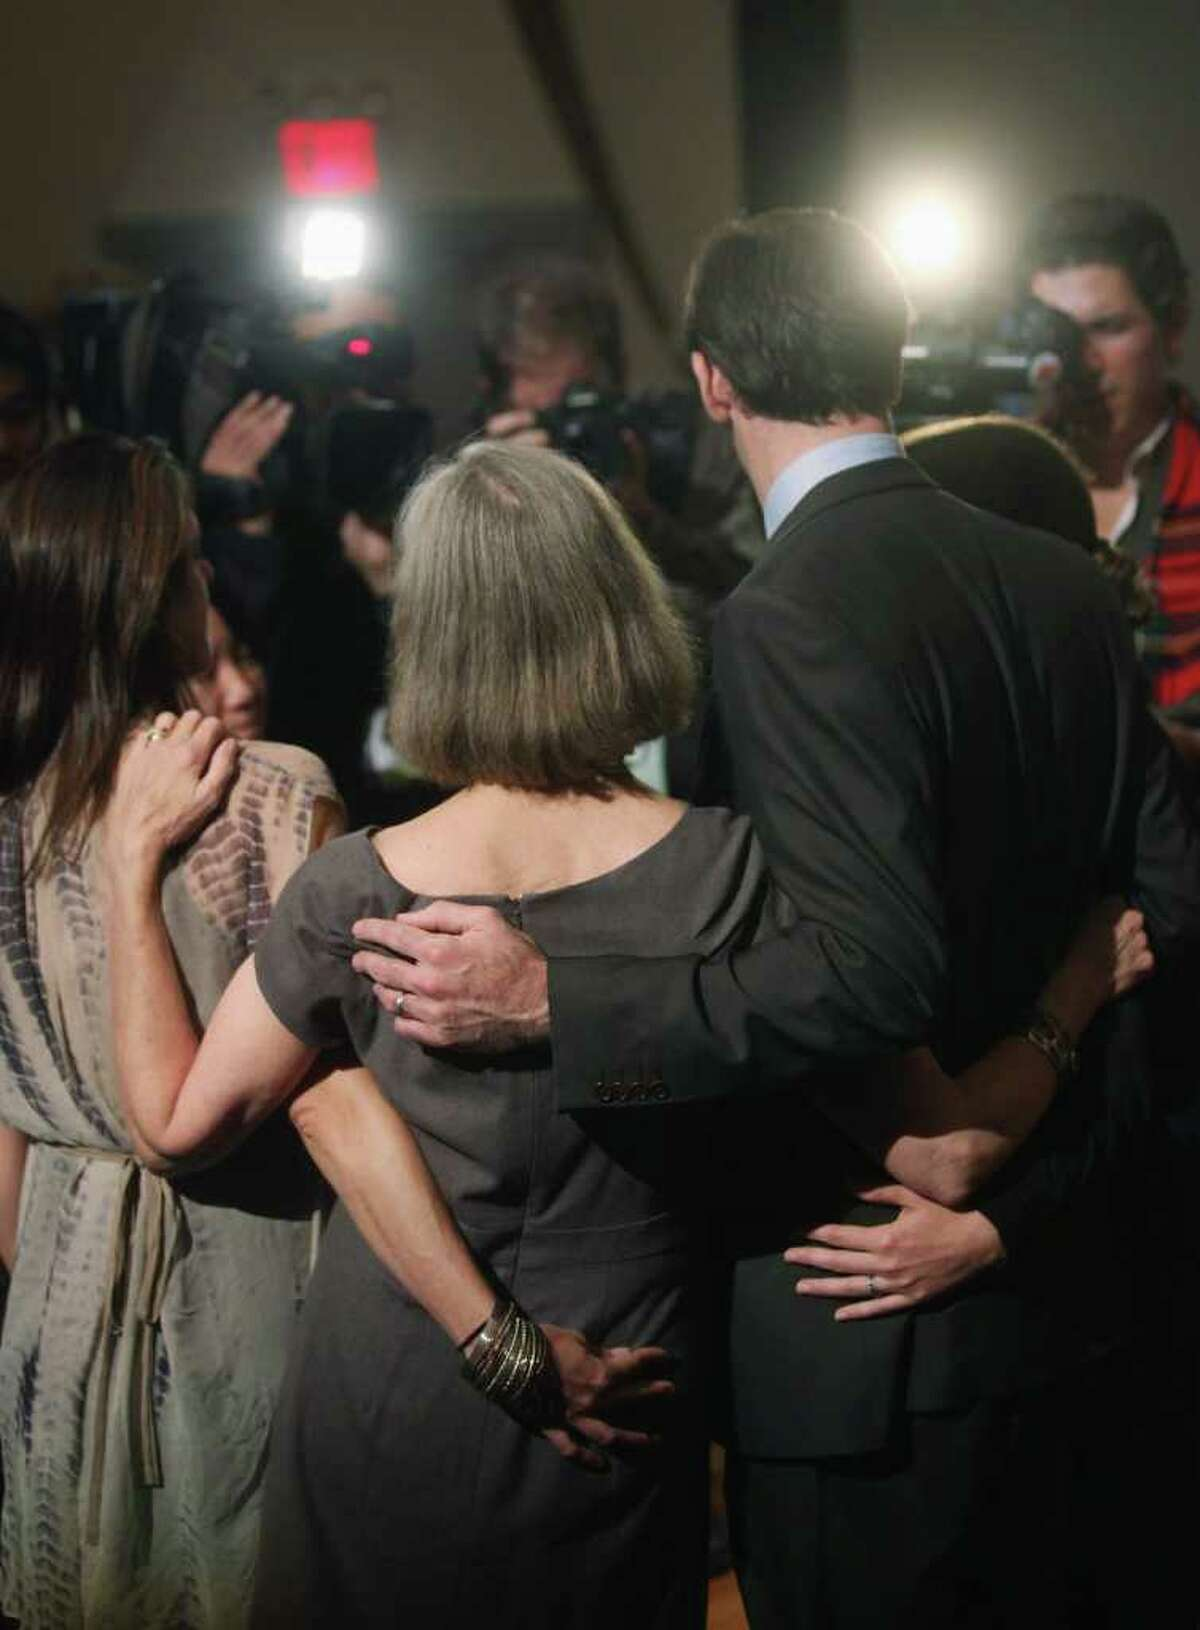 The family of deceased 2011 Nobel Prize in medicine winner Ralph Steinman embrace at a news conference at Rockefeller University on October 3, 2011 in New York City. Steinman, who passed away on September 30, was awarded for his discovery of the immune system's dendritic cells in the 1970s at Rockefeller University. Nobel Prizes are not awarded posthumously and the Nobel Committee was unaware of Steinman's death. (Photo by Mario Tama/Getty Images)